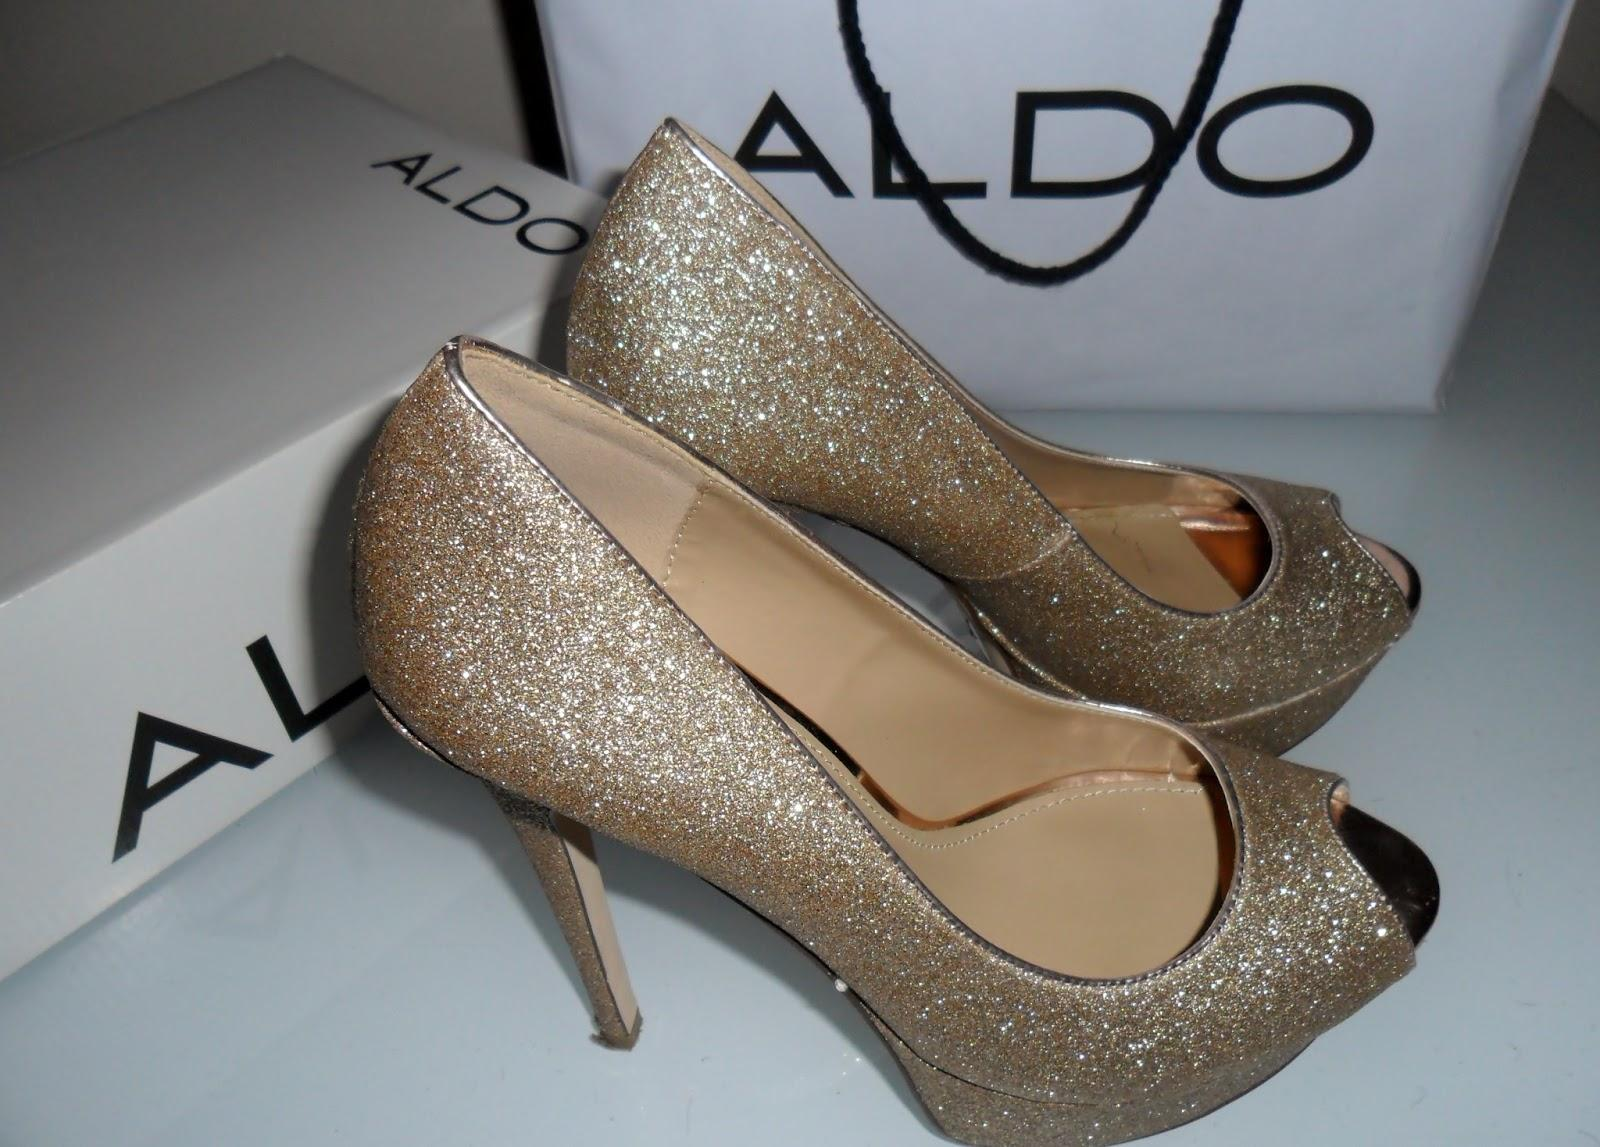 Aldo Shoes Review